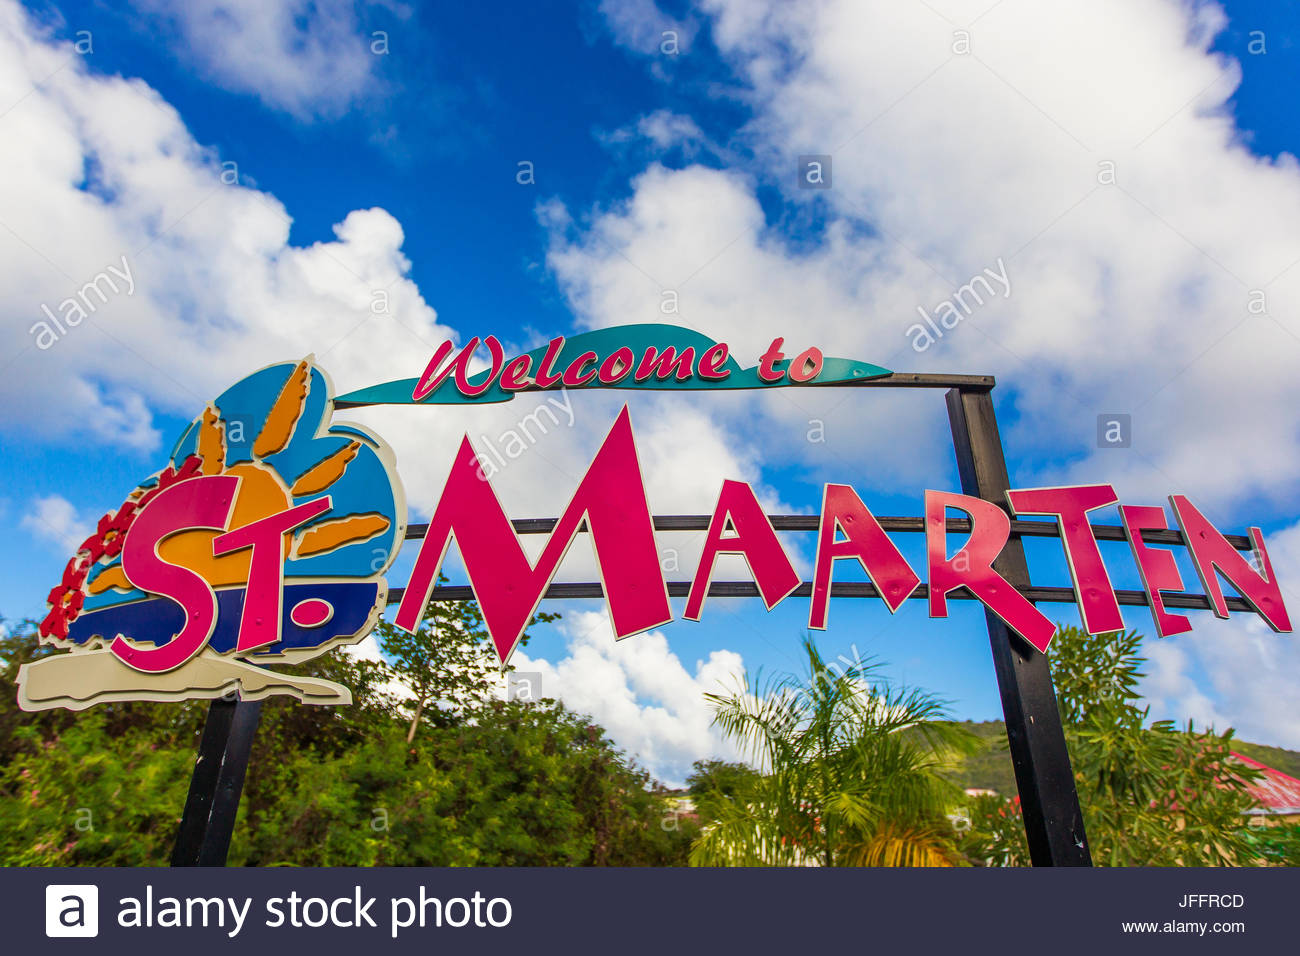 A colorful sign welcoming visitors to tropical Saint Martin Island. - Stock Image